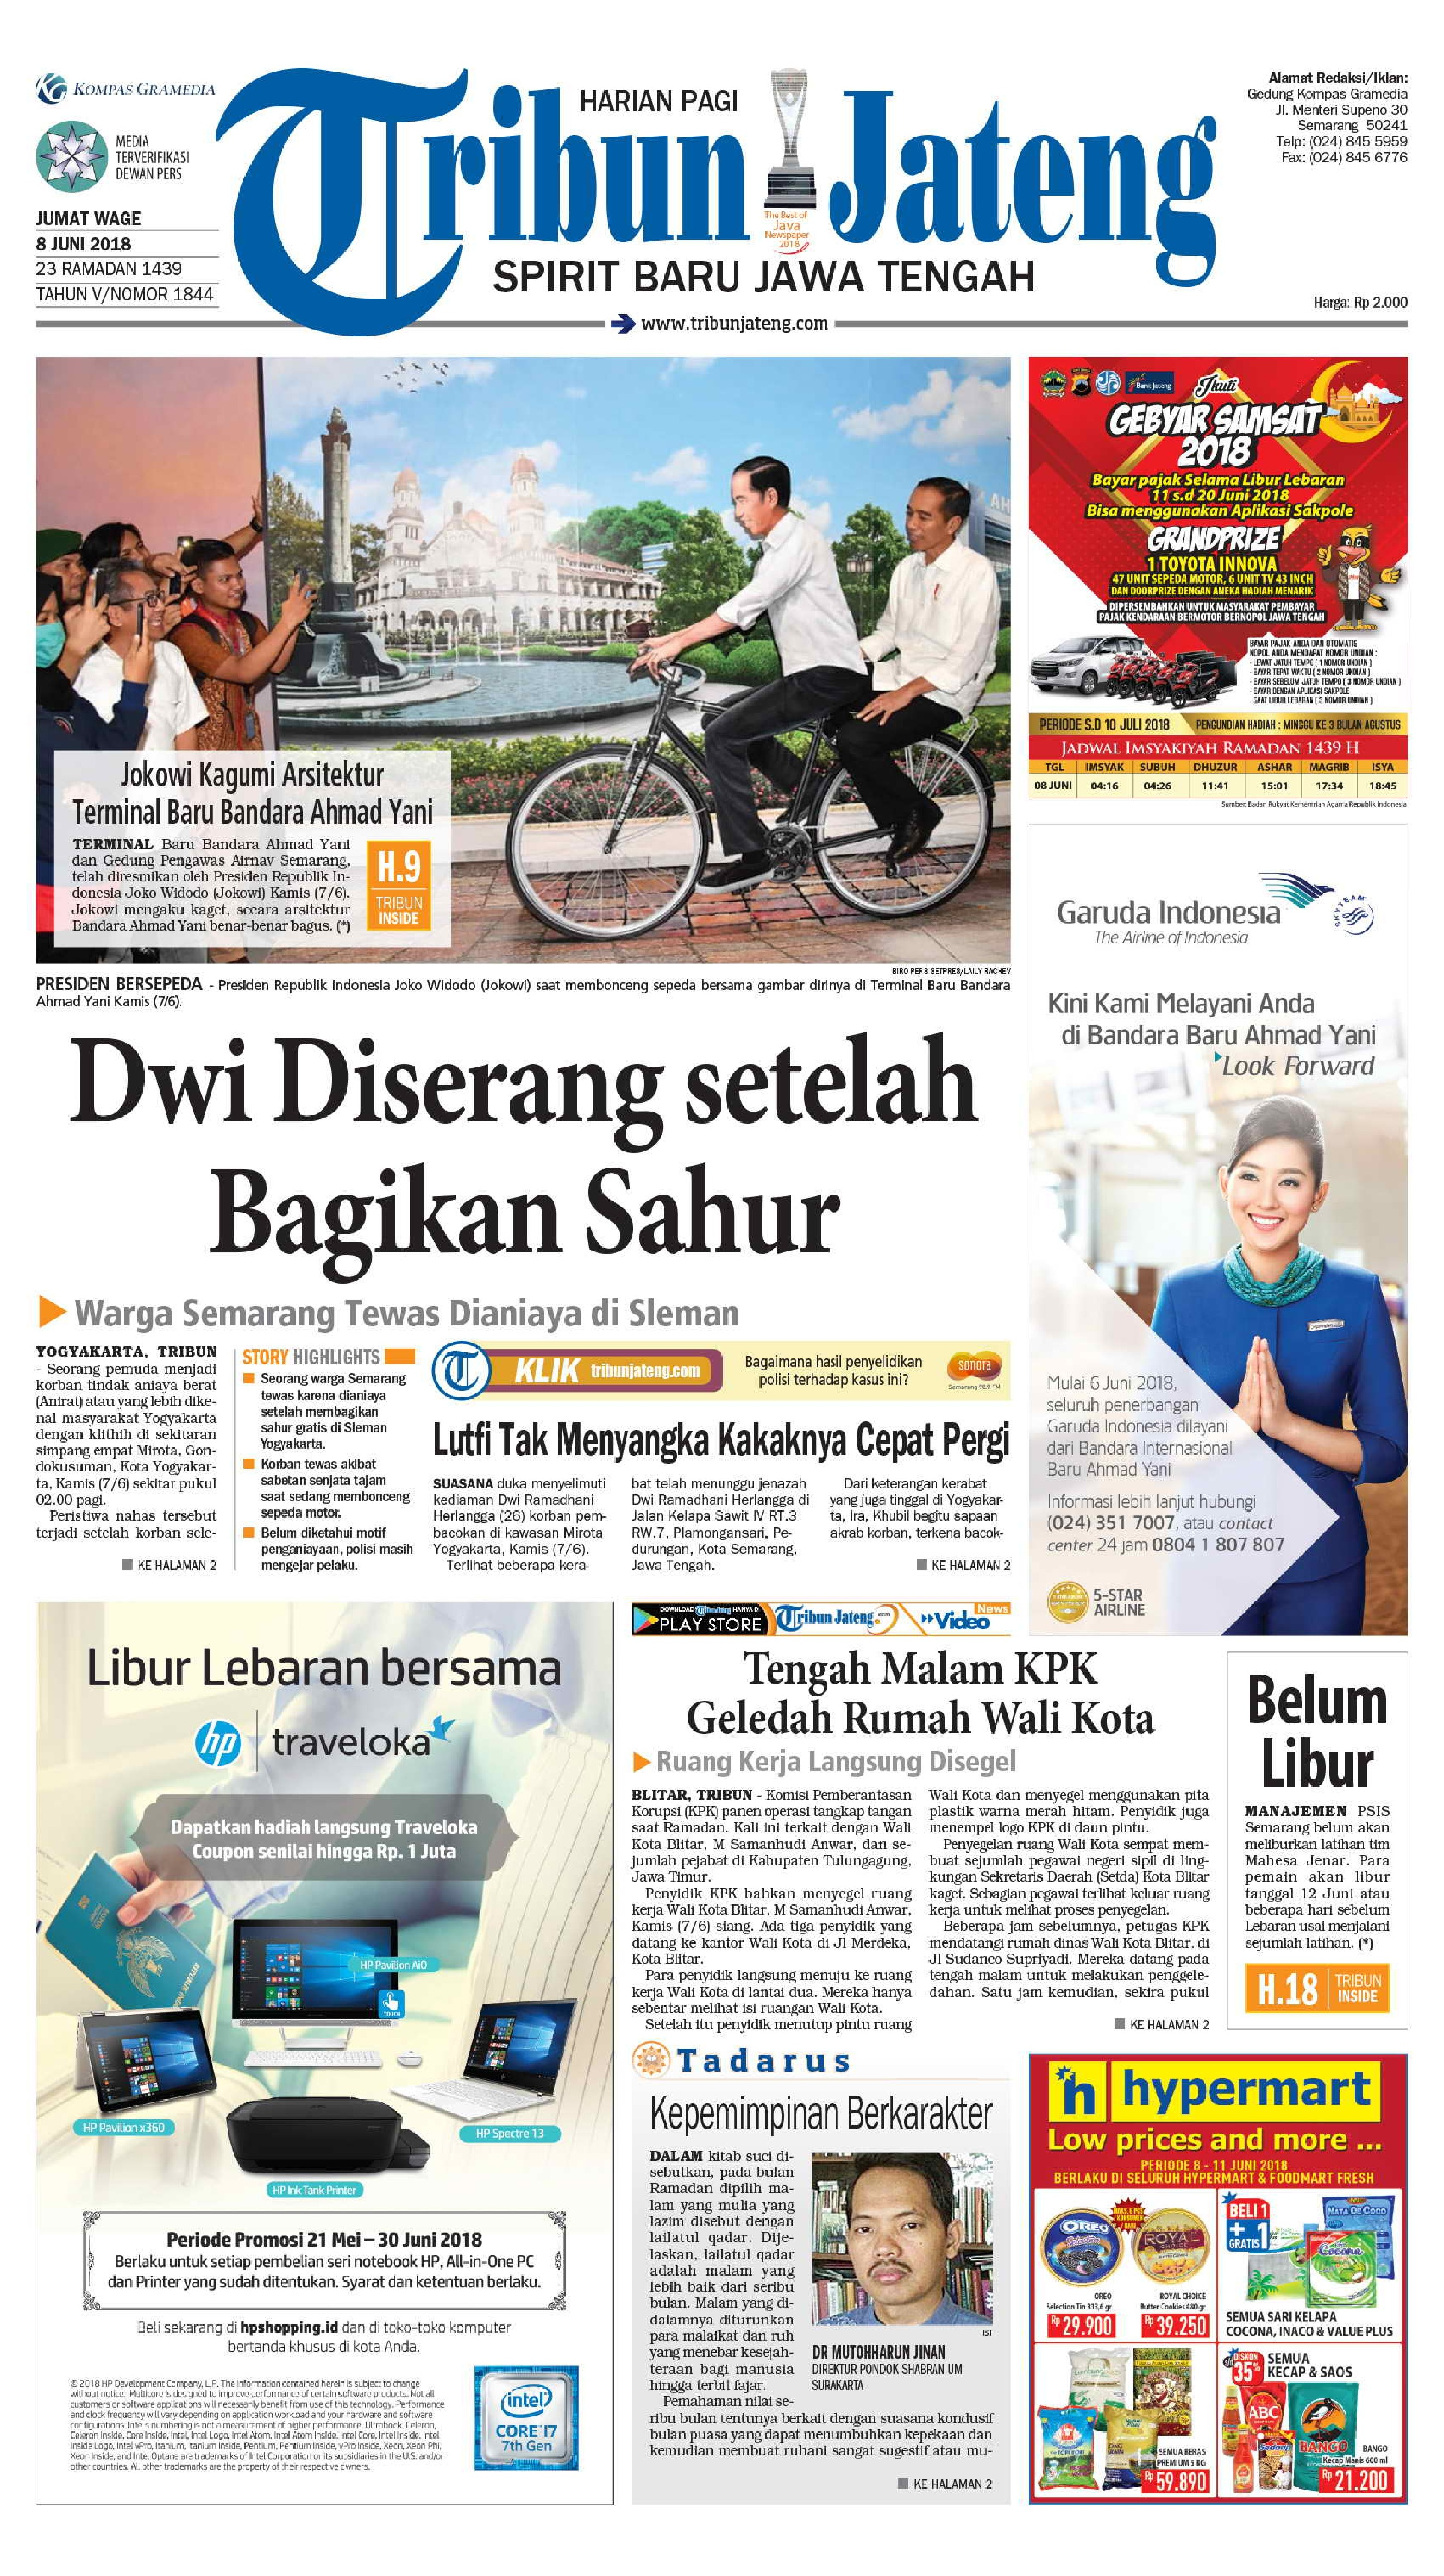 Tribun Jateng Newspaper 08 June 2018 Gramedia Digital Bango Kecap Manis 600ml Publication Can Only Be Read On E Reader